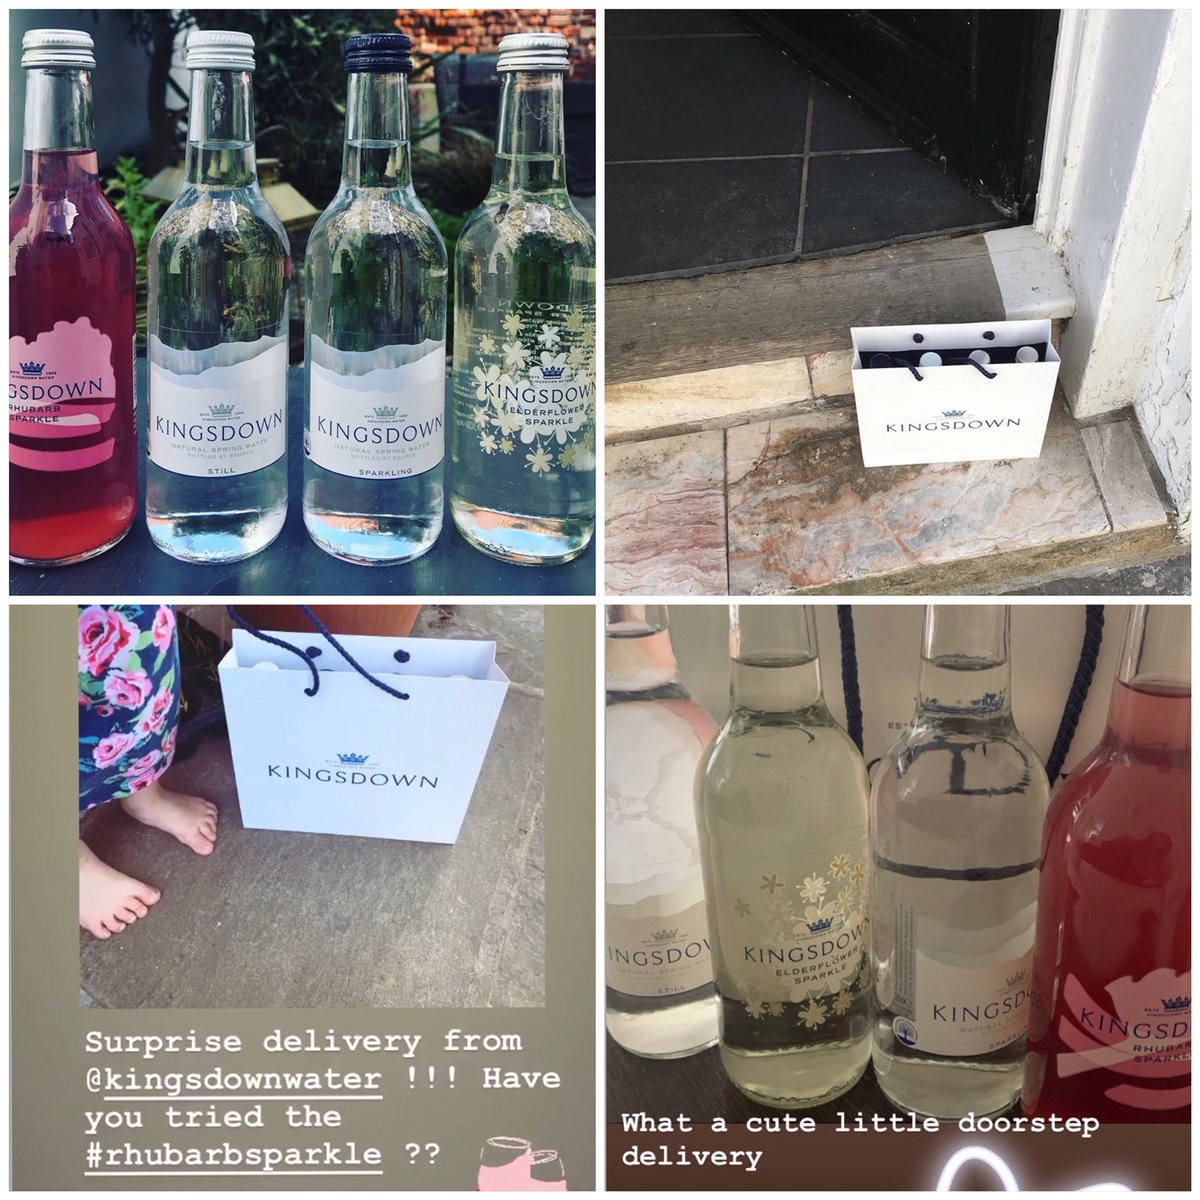 We have loved seeing your pictures of the tasters we've been delivering to local communities. The packs have been left on doorsteps to respect social distancing, the aim being to lift spirits through these very challenging times! #StaySafe #COVID19 #FridayFeeling #shoplocal https://t.co/m0SsZkK8rw